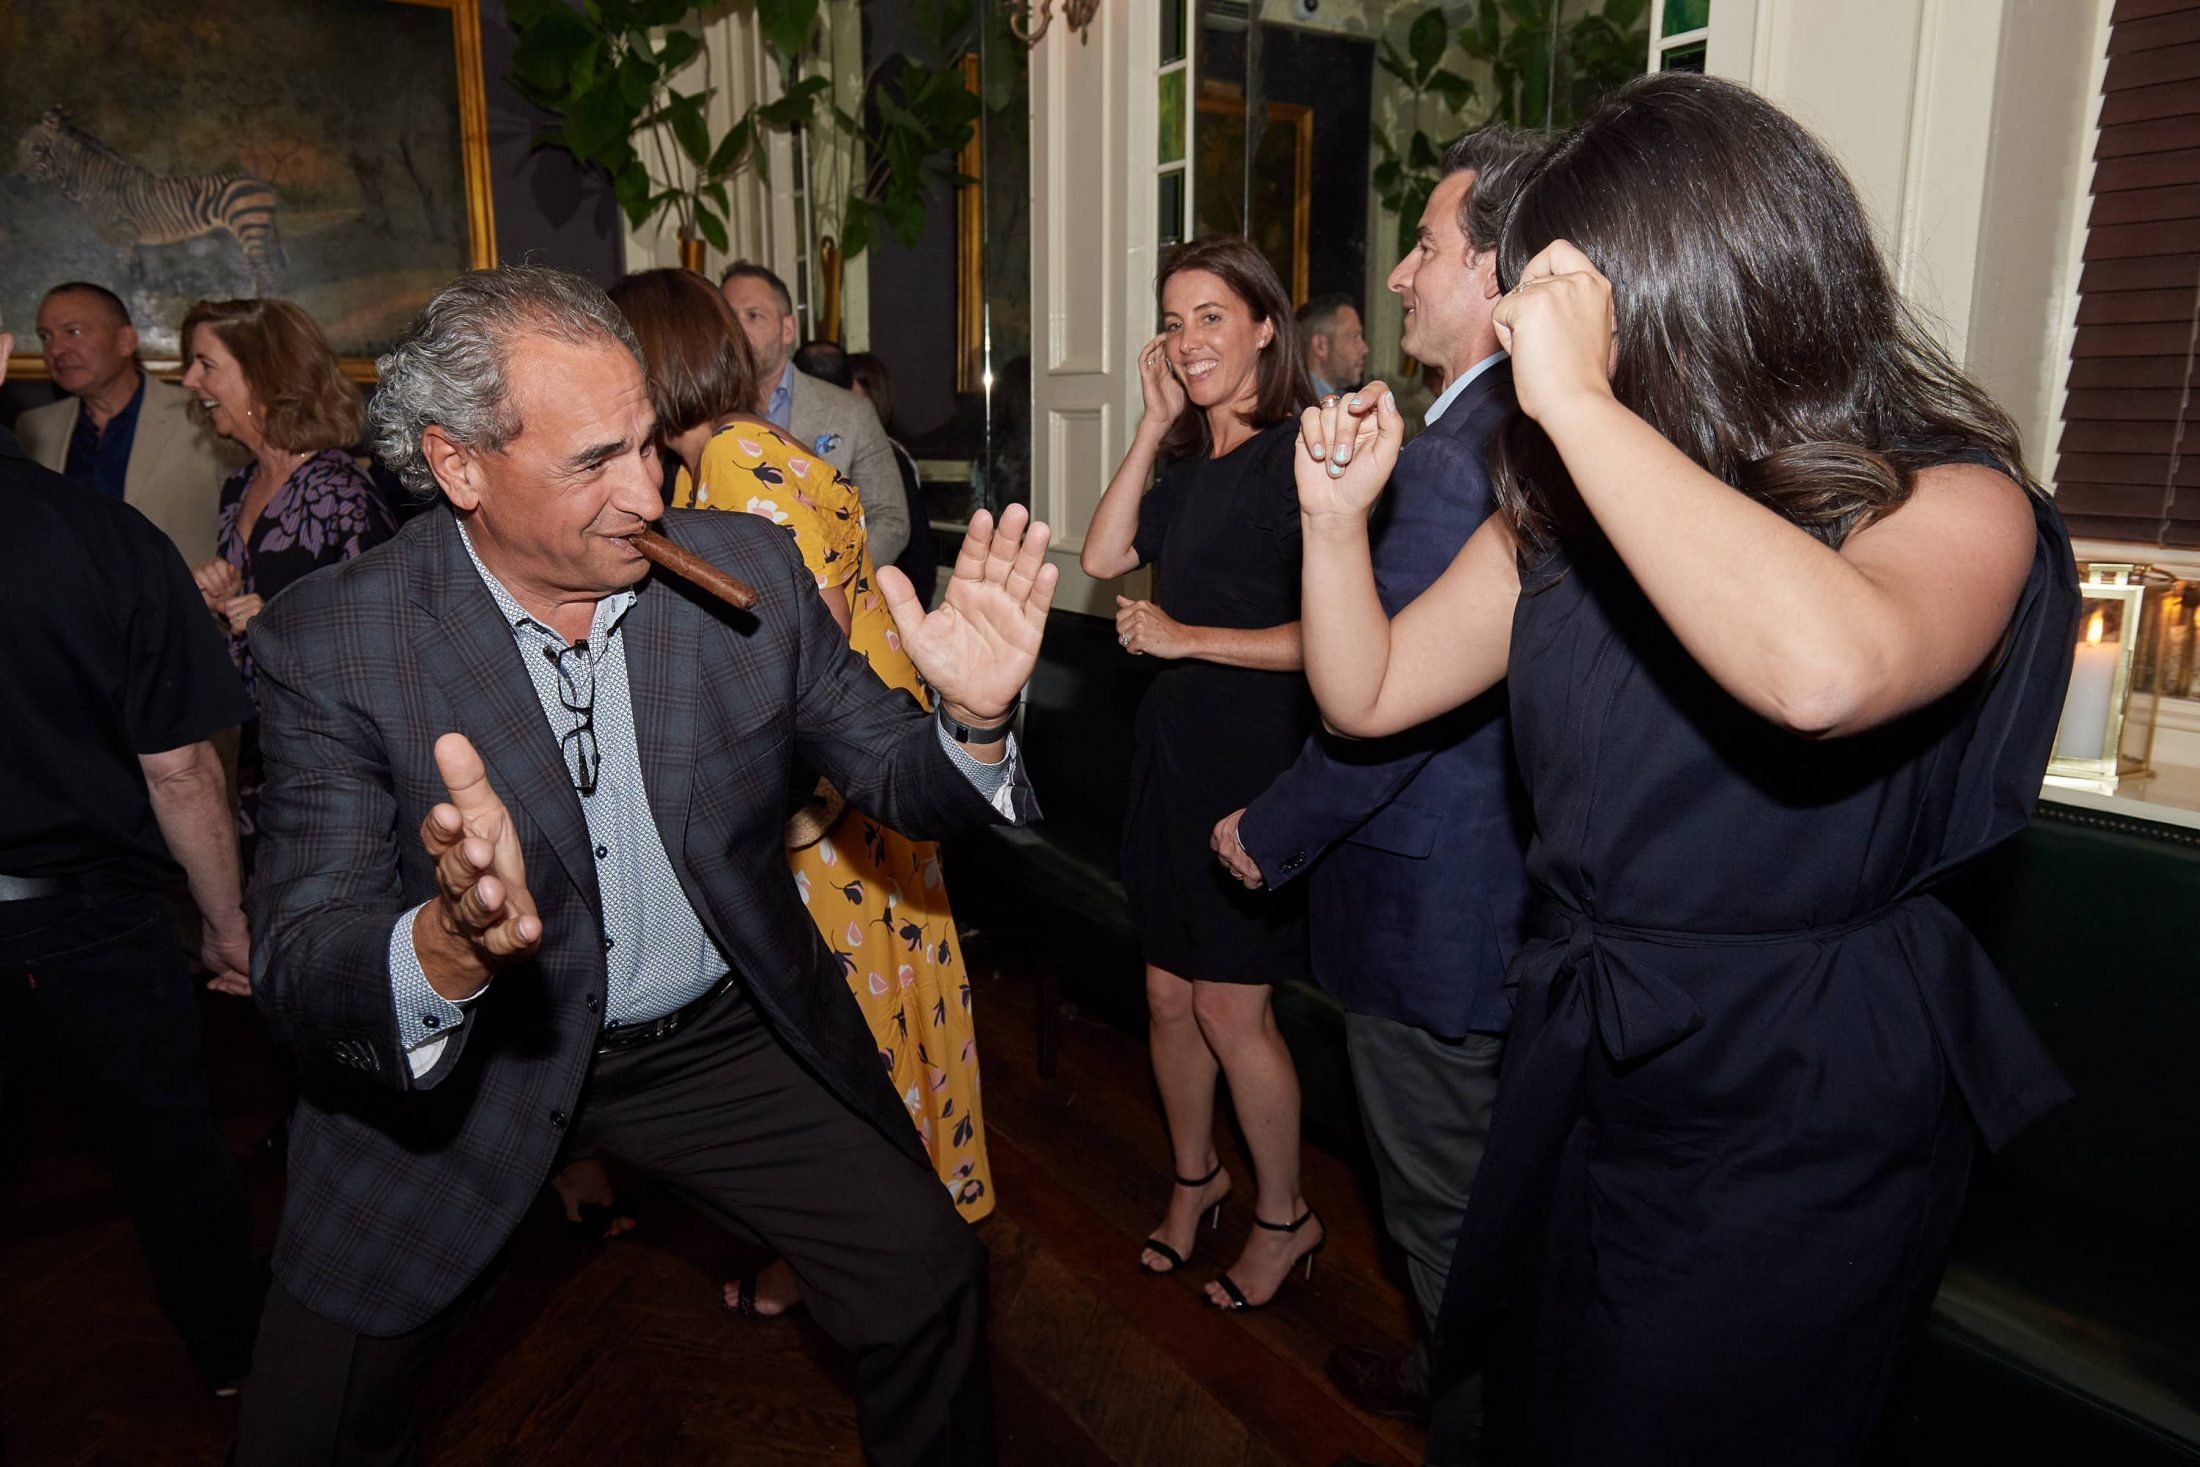 Dancing at this 40th surprise birthday party at Beatrice Inn in West Village | Photo by Darren Ornitz